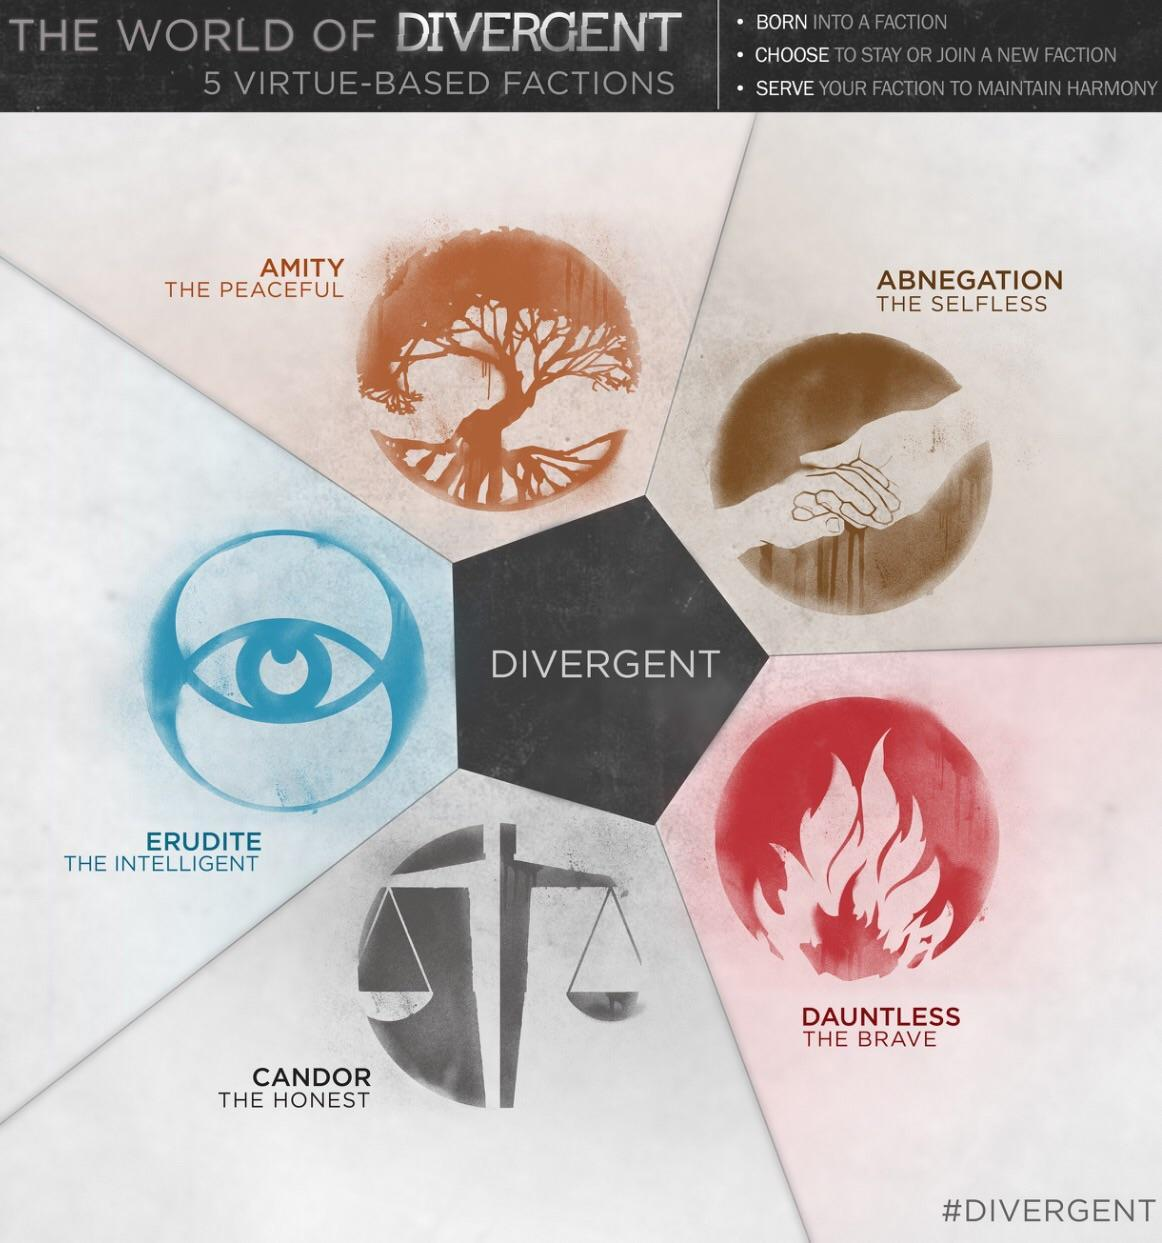 If you were divergent where would you go?